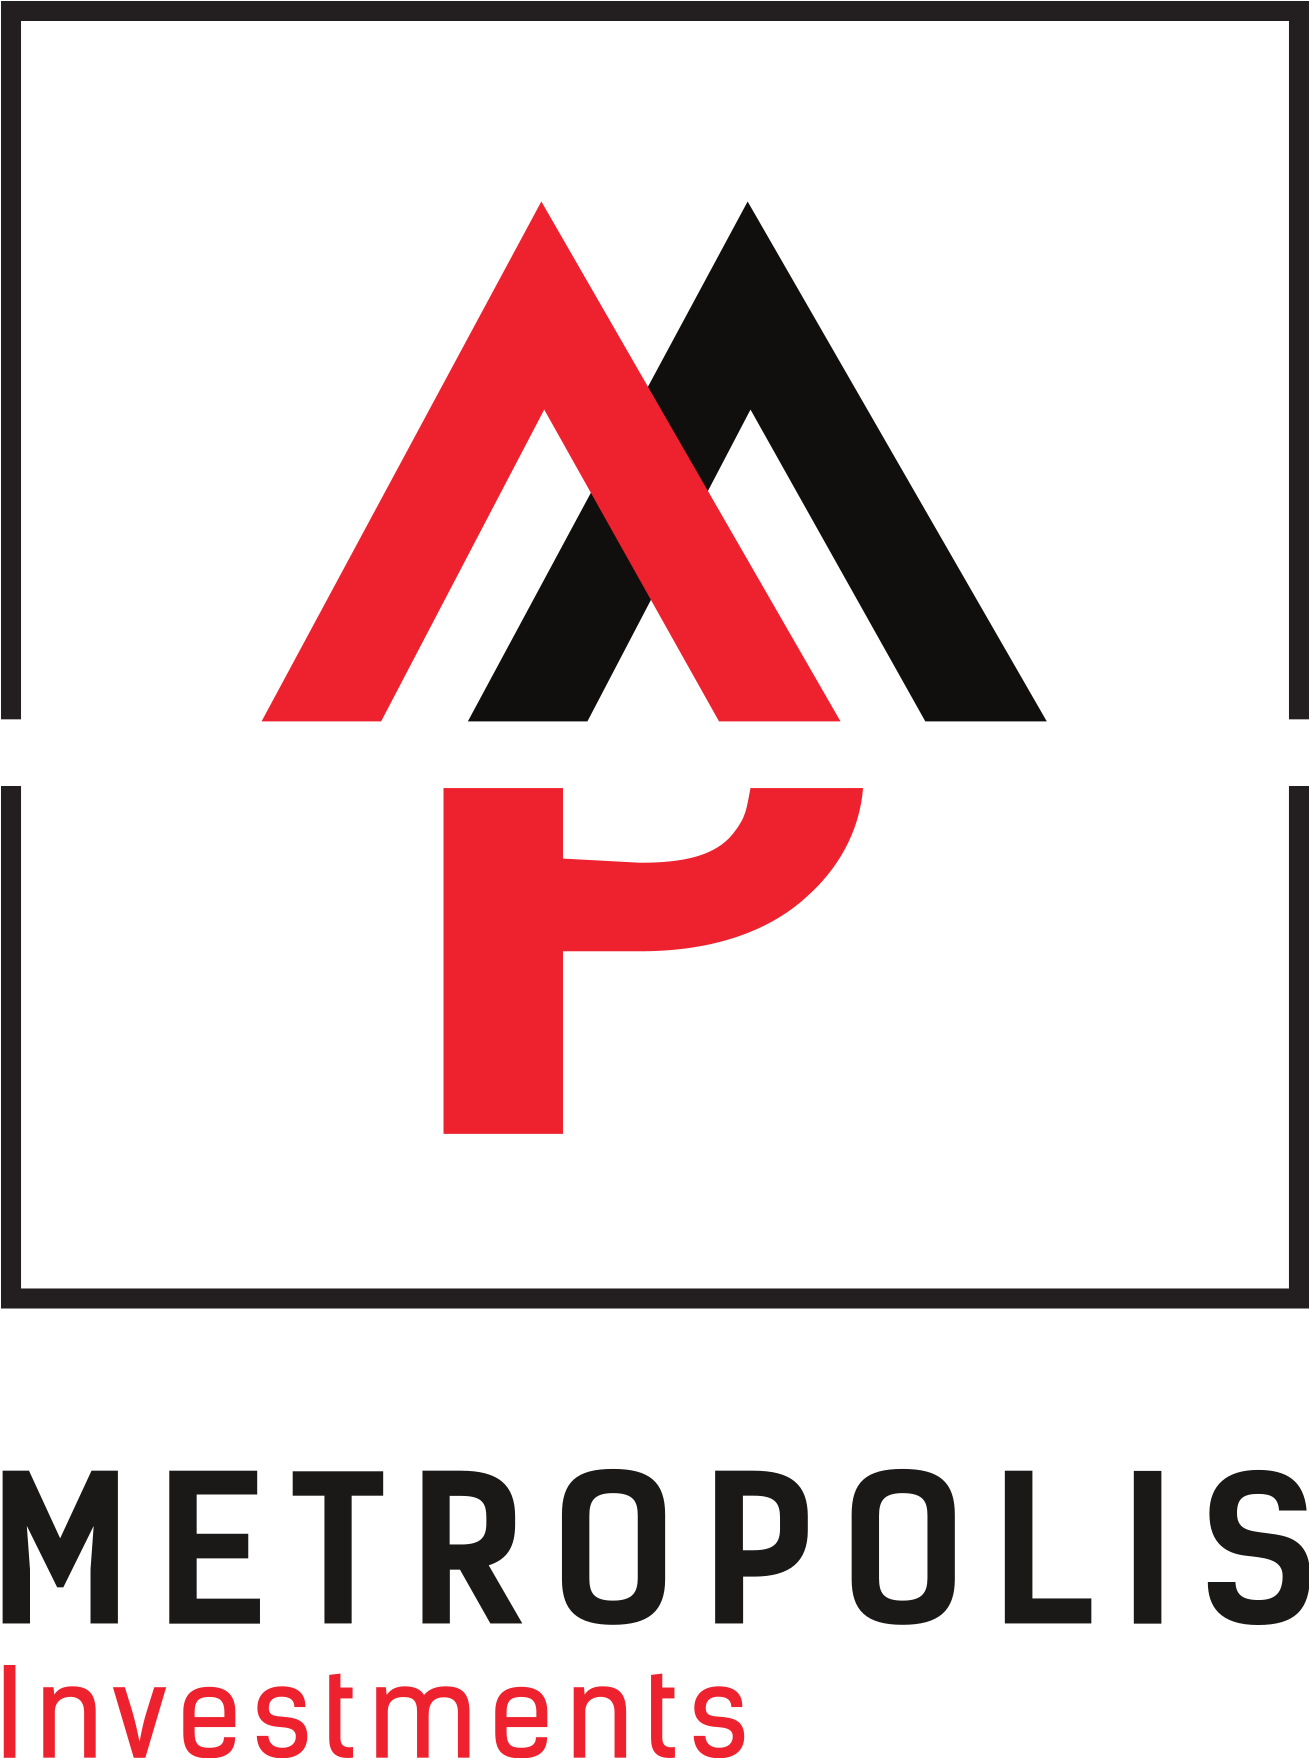 Metropolis Investments